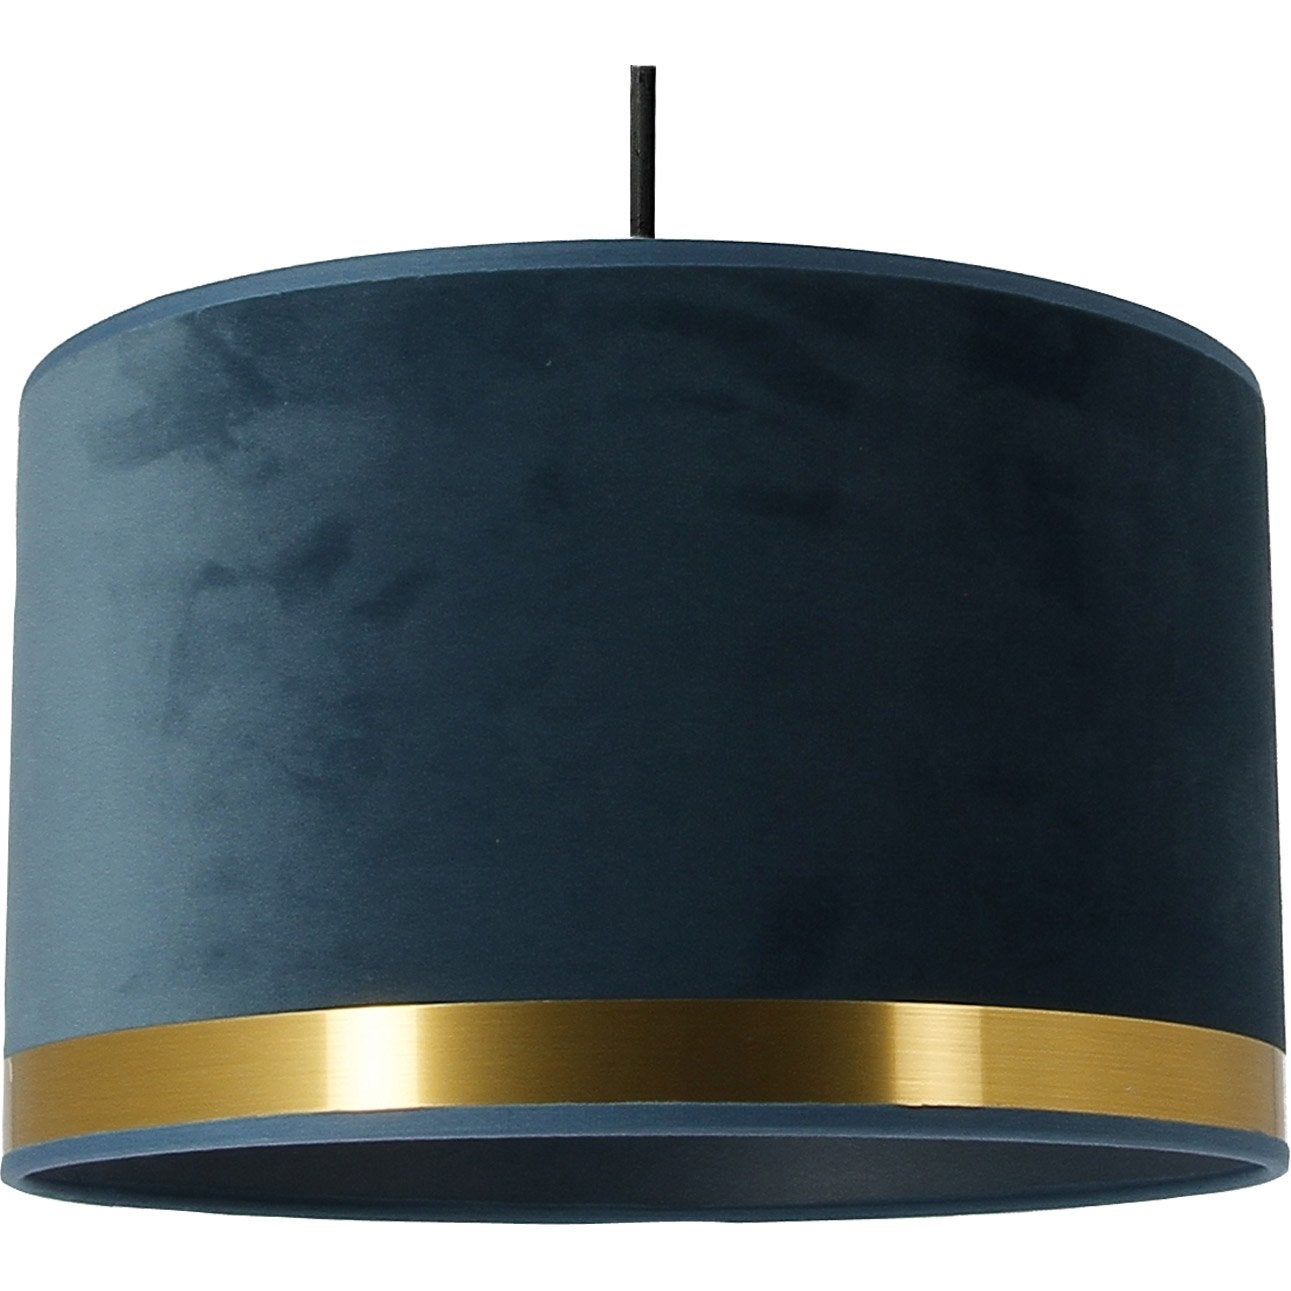 Suspension, E27, Art déco tissu bleu paon/laiton 1 x 60 W METROPOLIGHT